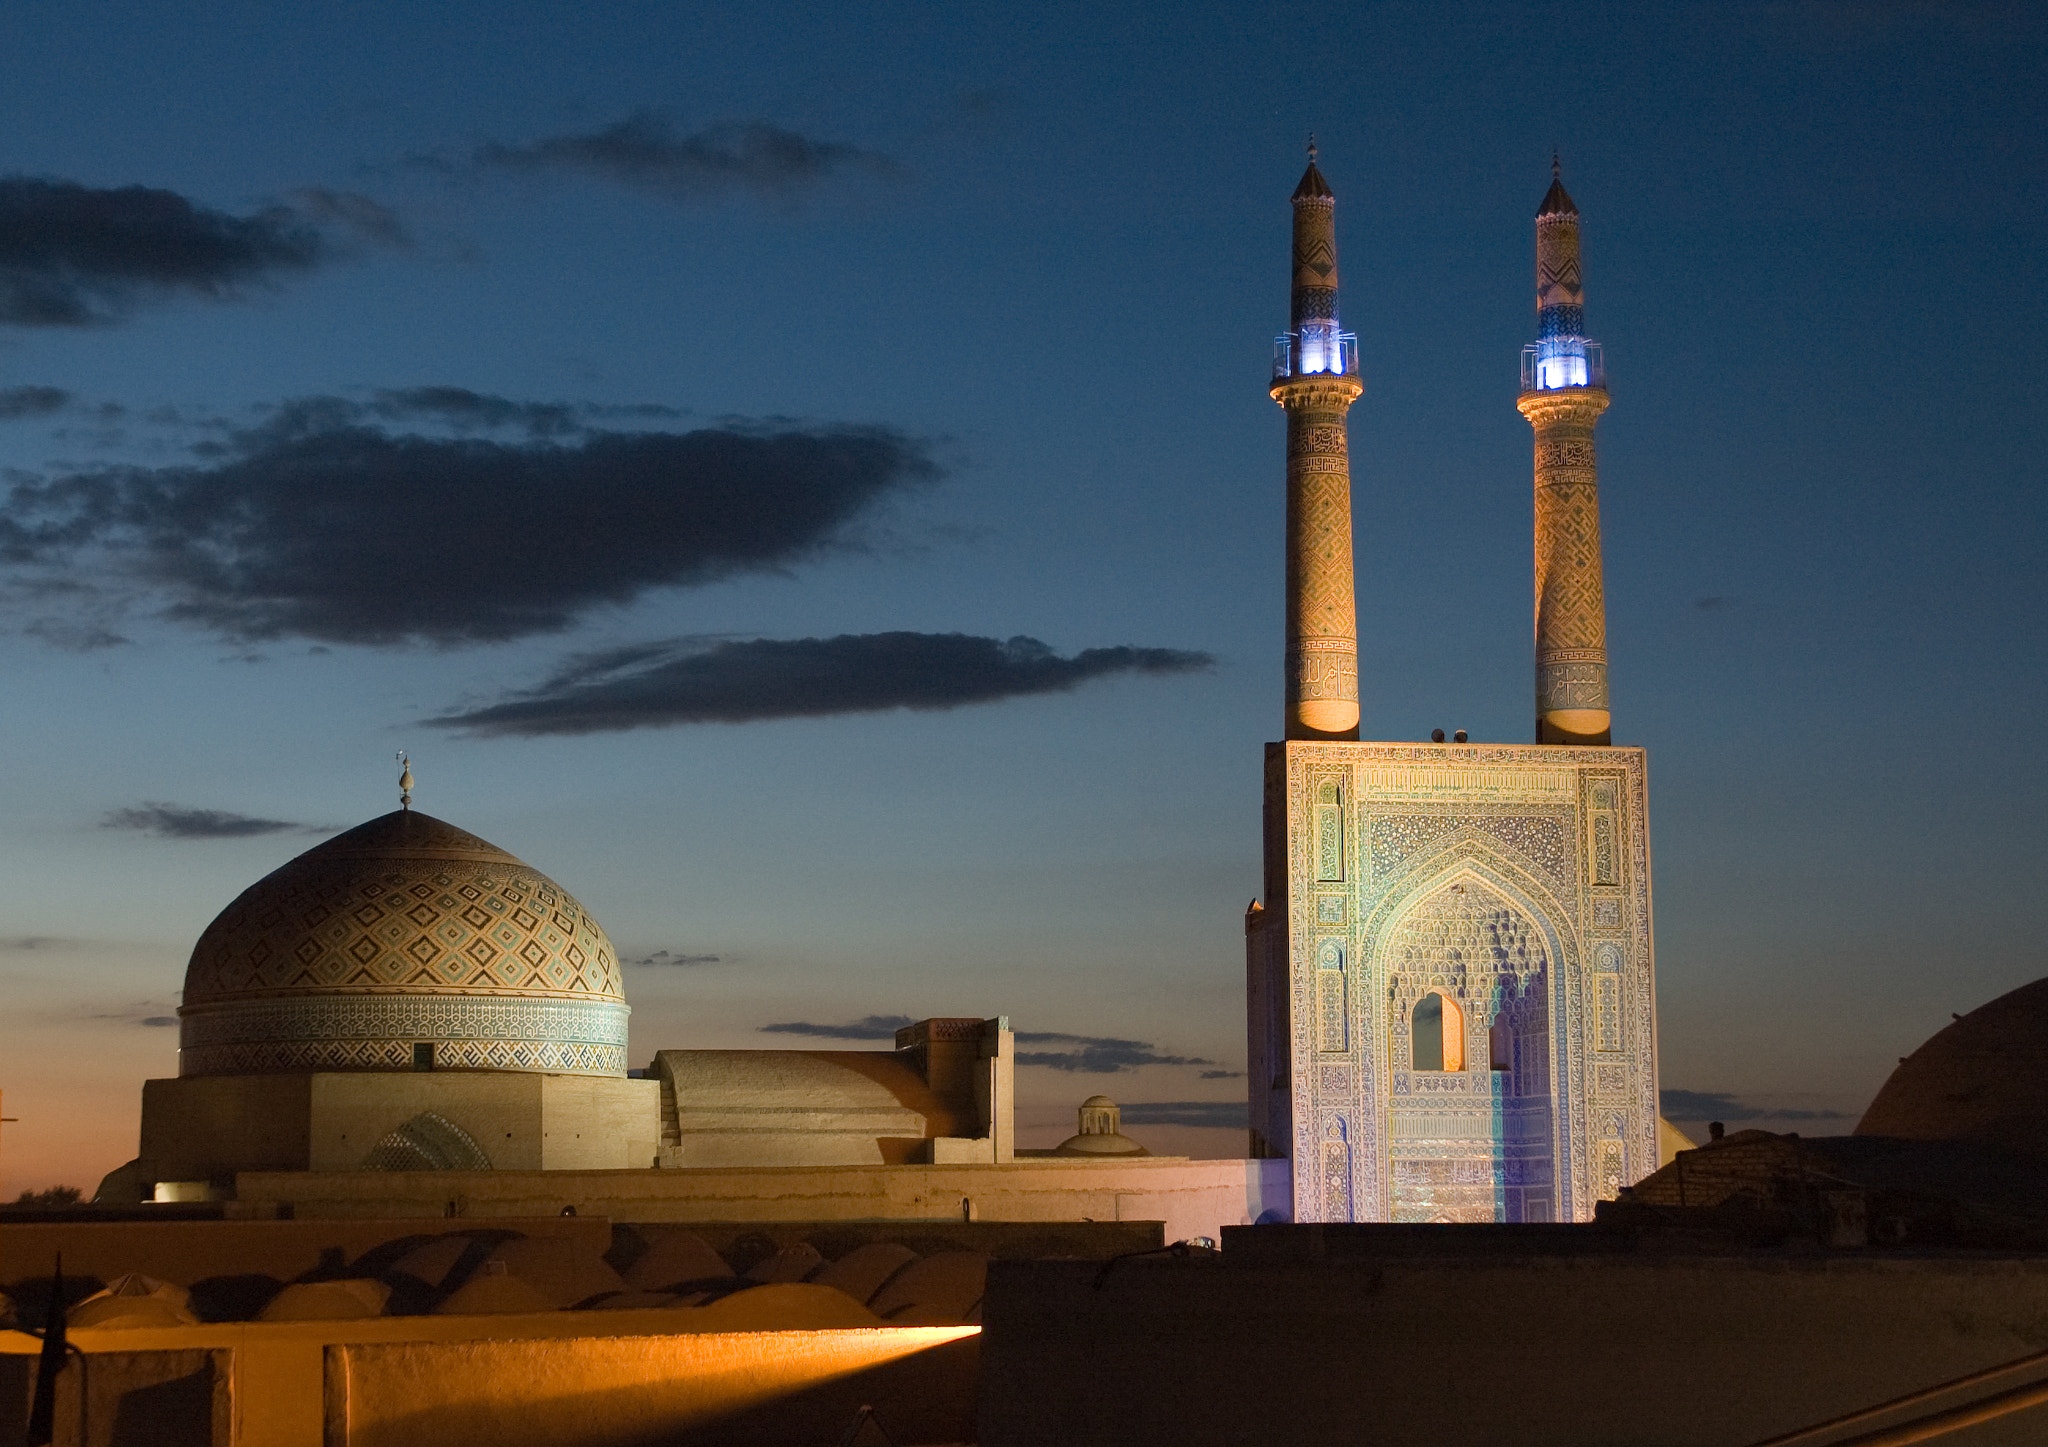 Photograph Jame mosque of Yazd by Edith Gstrein  on 500px